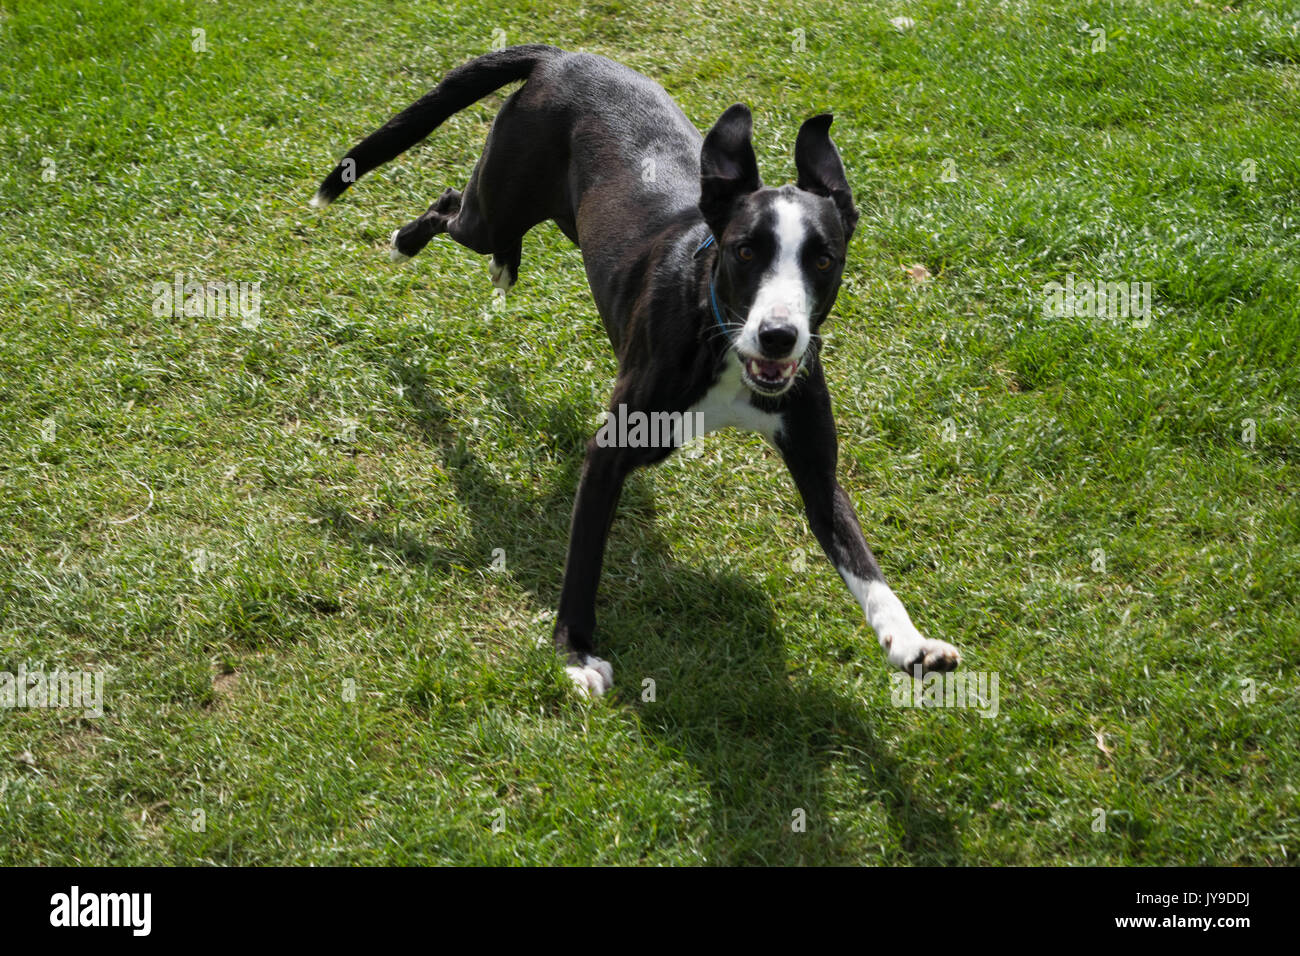 A male black and white dog running on green grass with his ears up - Stock Image